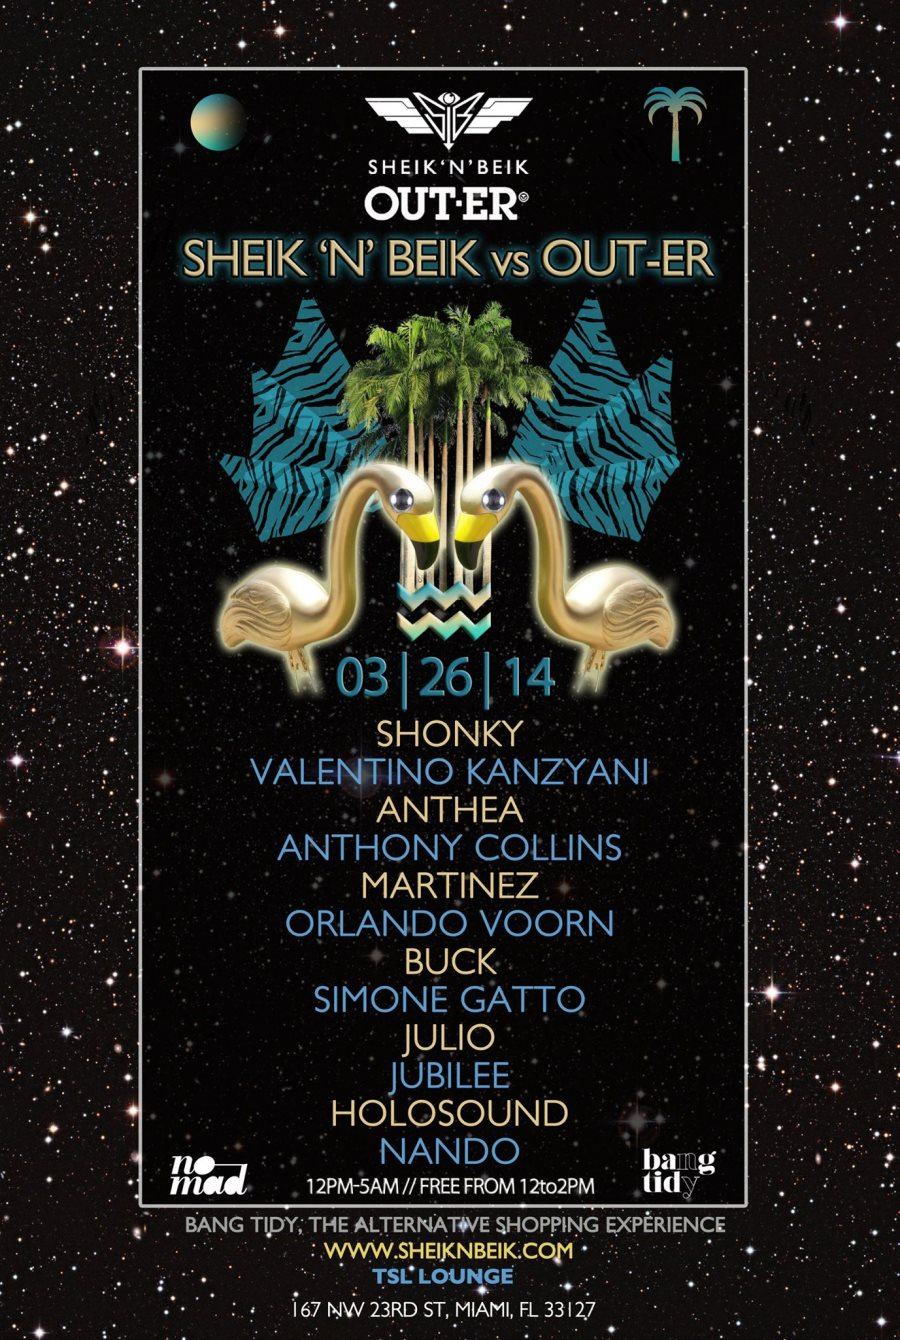 Day & Night Shonky, Valentino Kanzyani, Anthea, Anthony Collins, Martinez, and More - Flyer front